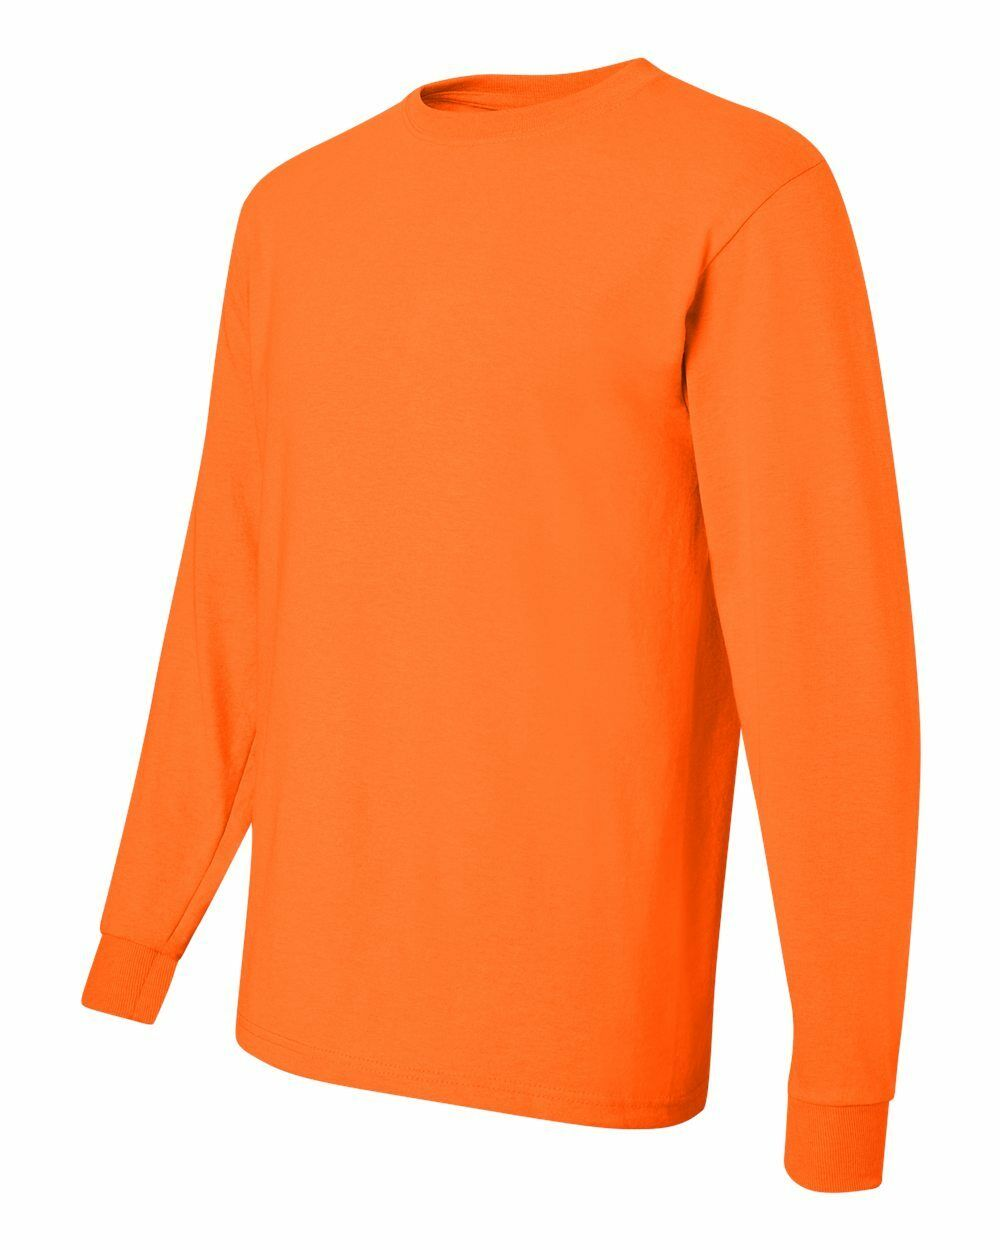 25 JerZee Heavyweight Safety Orange Adult Long Sleeve T-Shirts Bulk Lot S M L XL